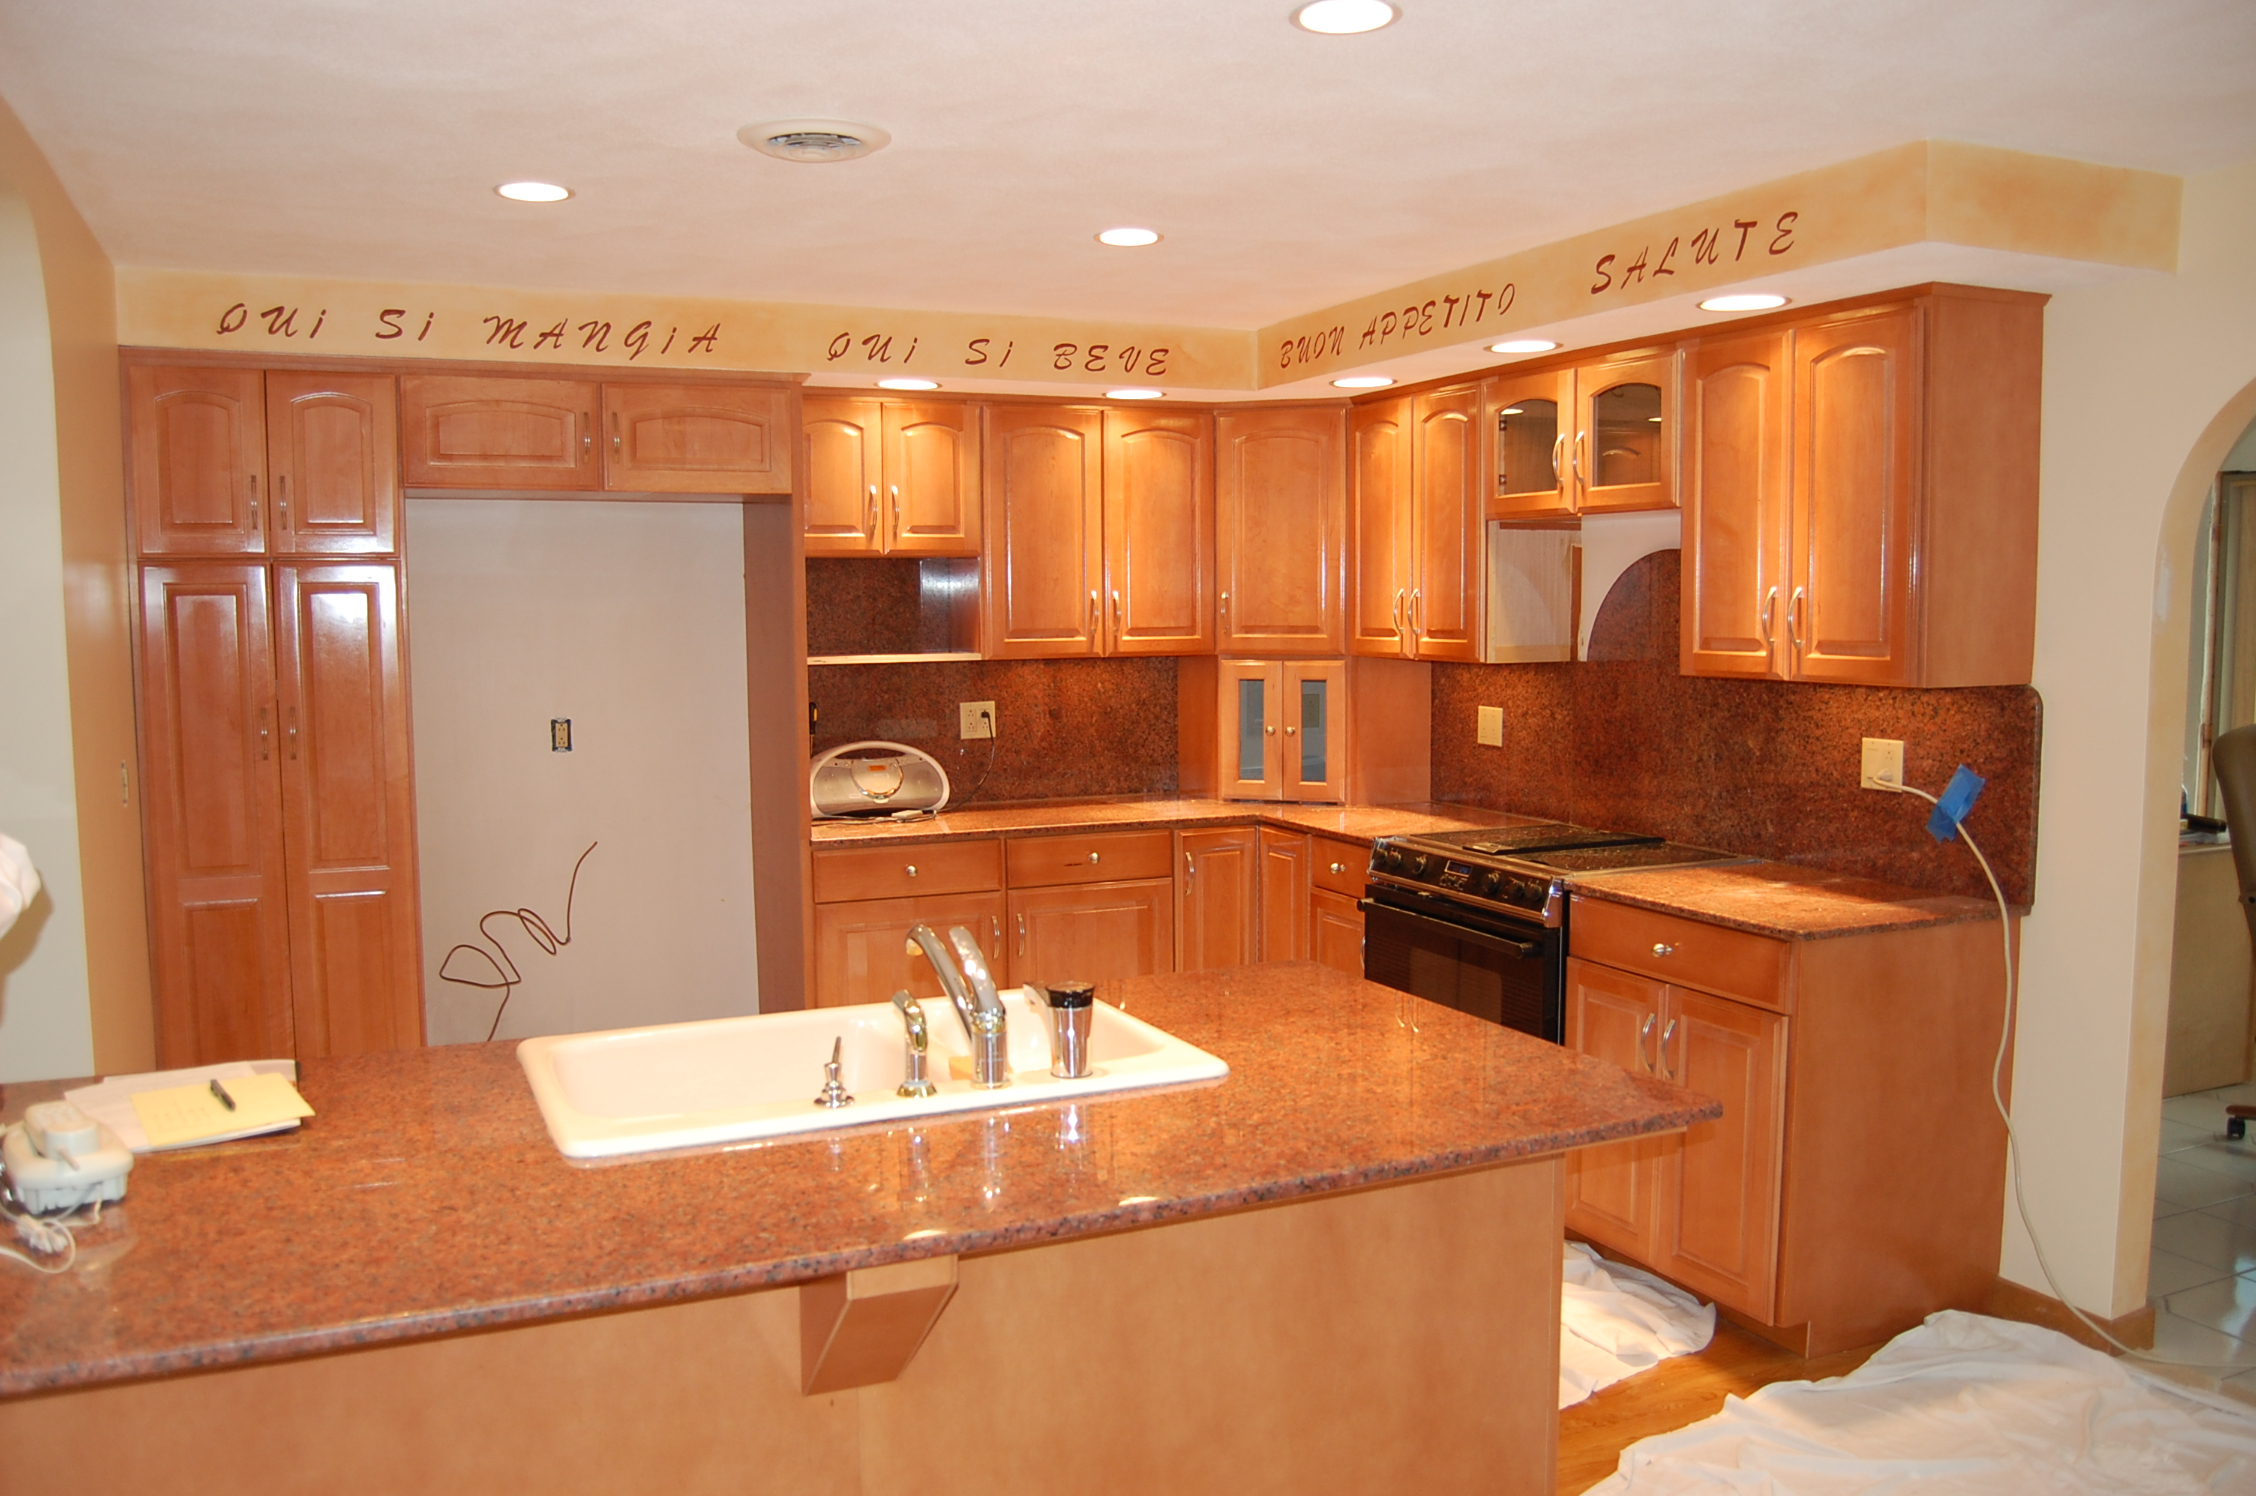 Impressive Refacing Kitchen Cabinets Before and After 2256 x 1496 · 1401 kB · jpeg